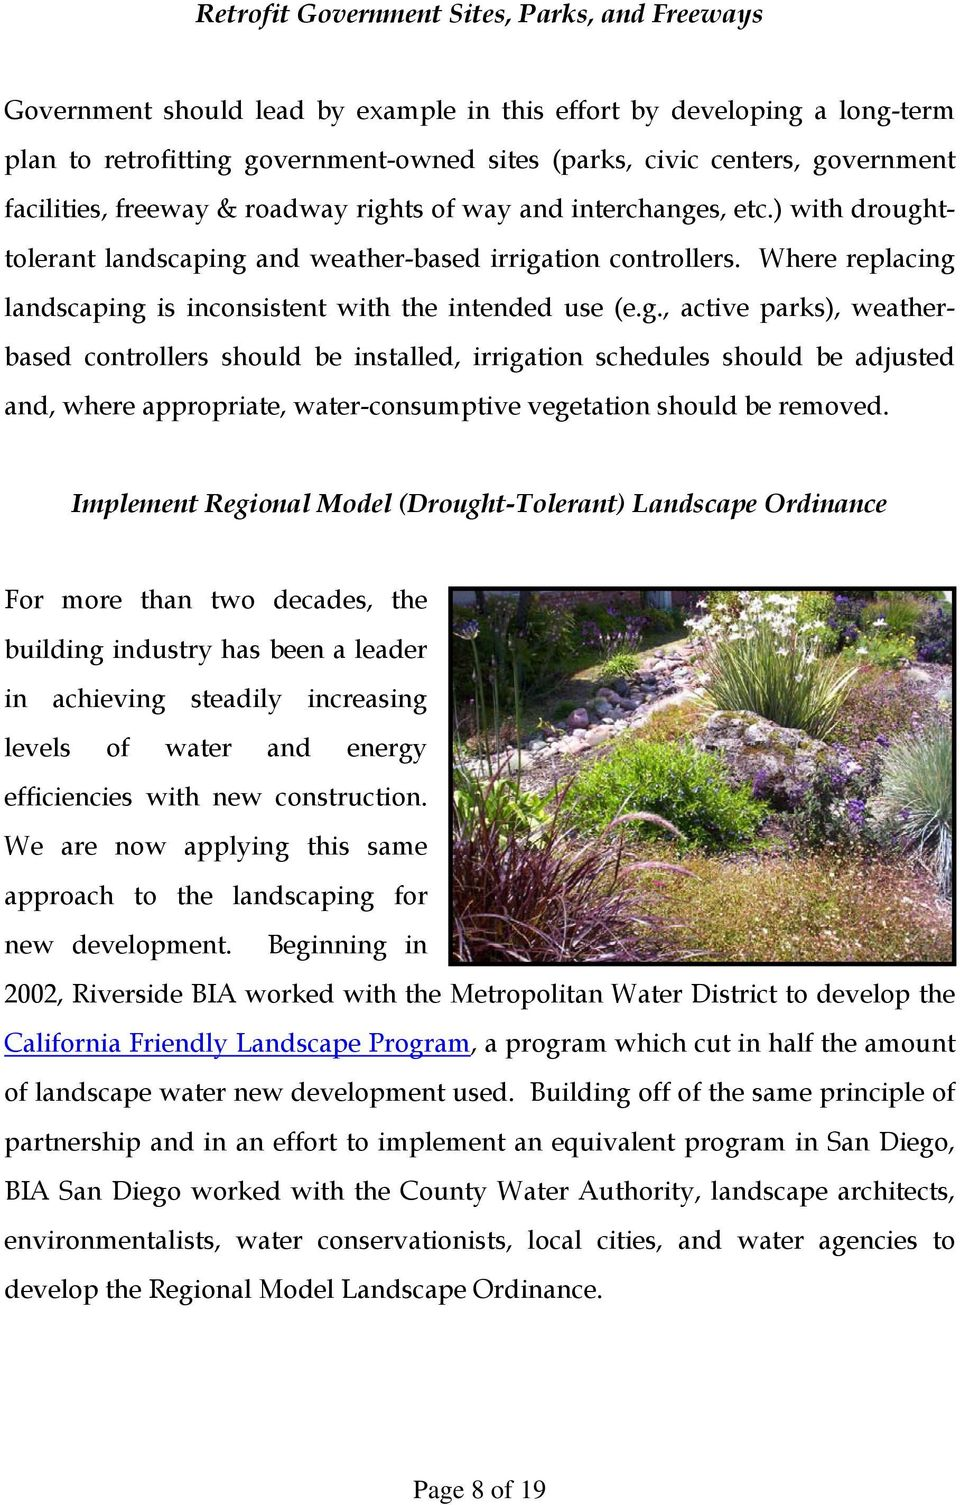 Where replacing landscaping is inconsistent with the intended use (e.g., active parks), weatherbased controllers should be installed, irrigation schedules should be adjusted and, where appropriate, water-consumptive vegetation should be removed.